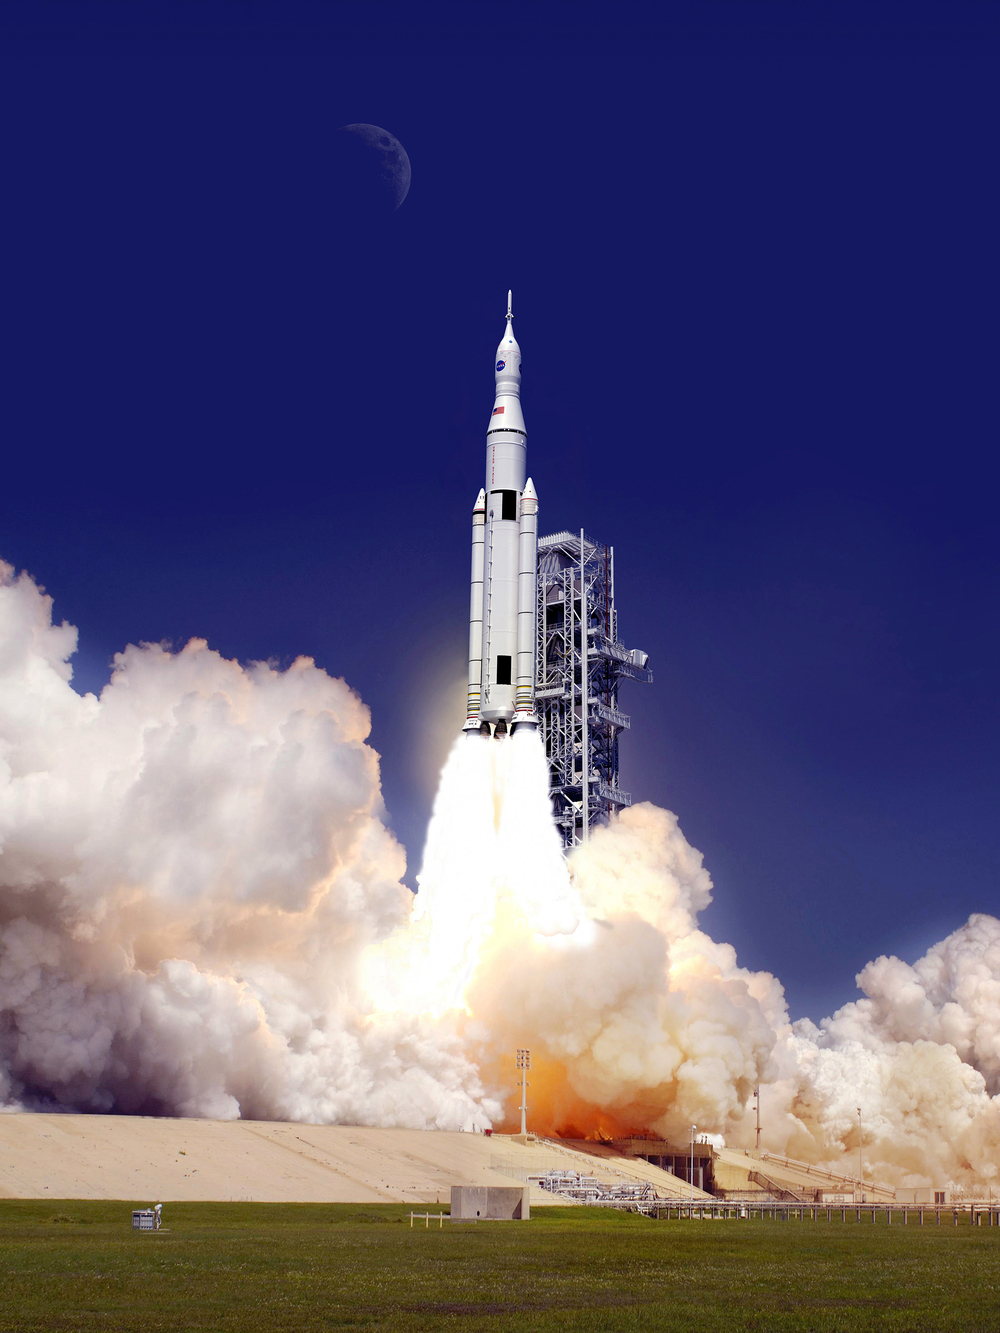 An artist's concept of the Space Launch System lifting off from the launch pad